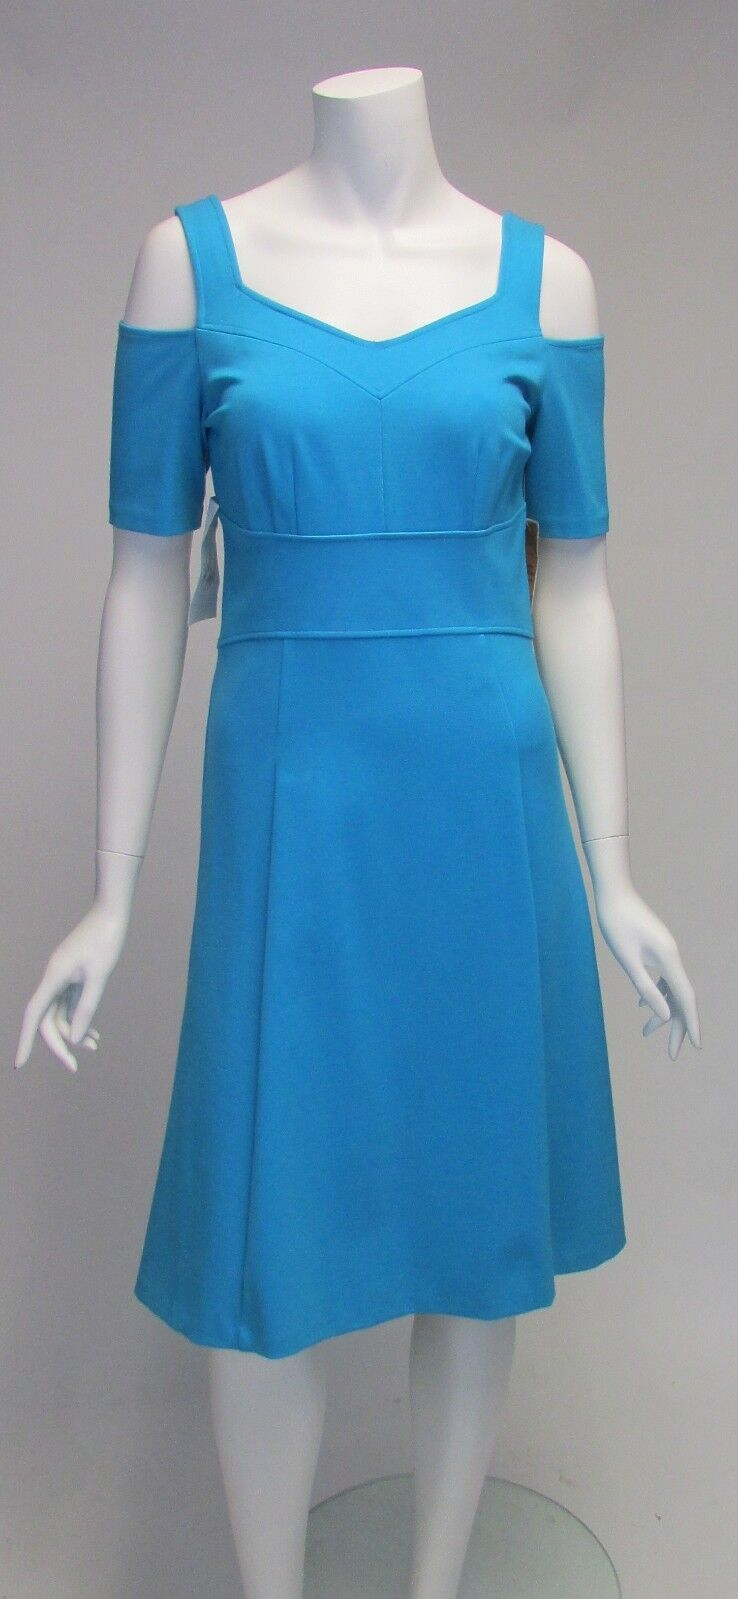 NUE by Shani bluee Short Sleeve Off On the Shoulder Slimming Dress Sz 4 NWT  250